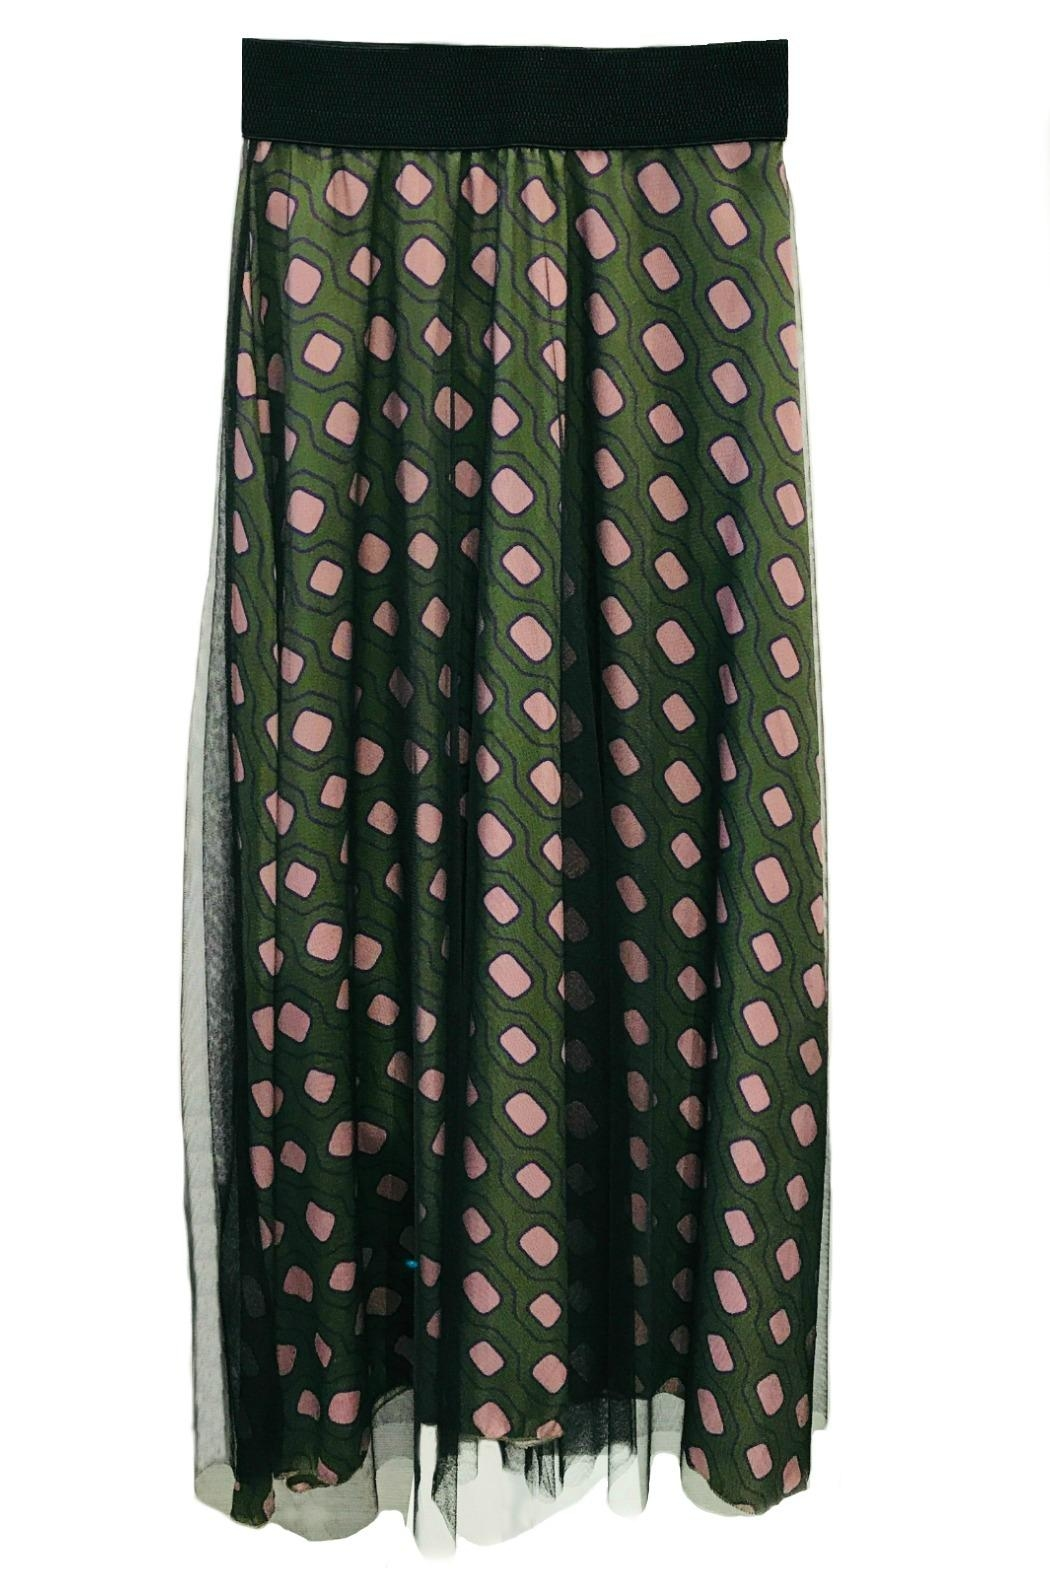 ANTONELLO SERIO Green Graphic Skirt - Main Image